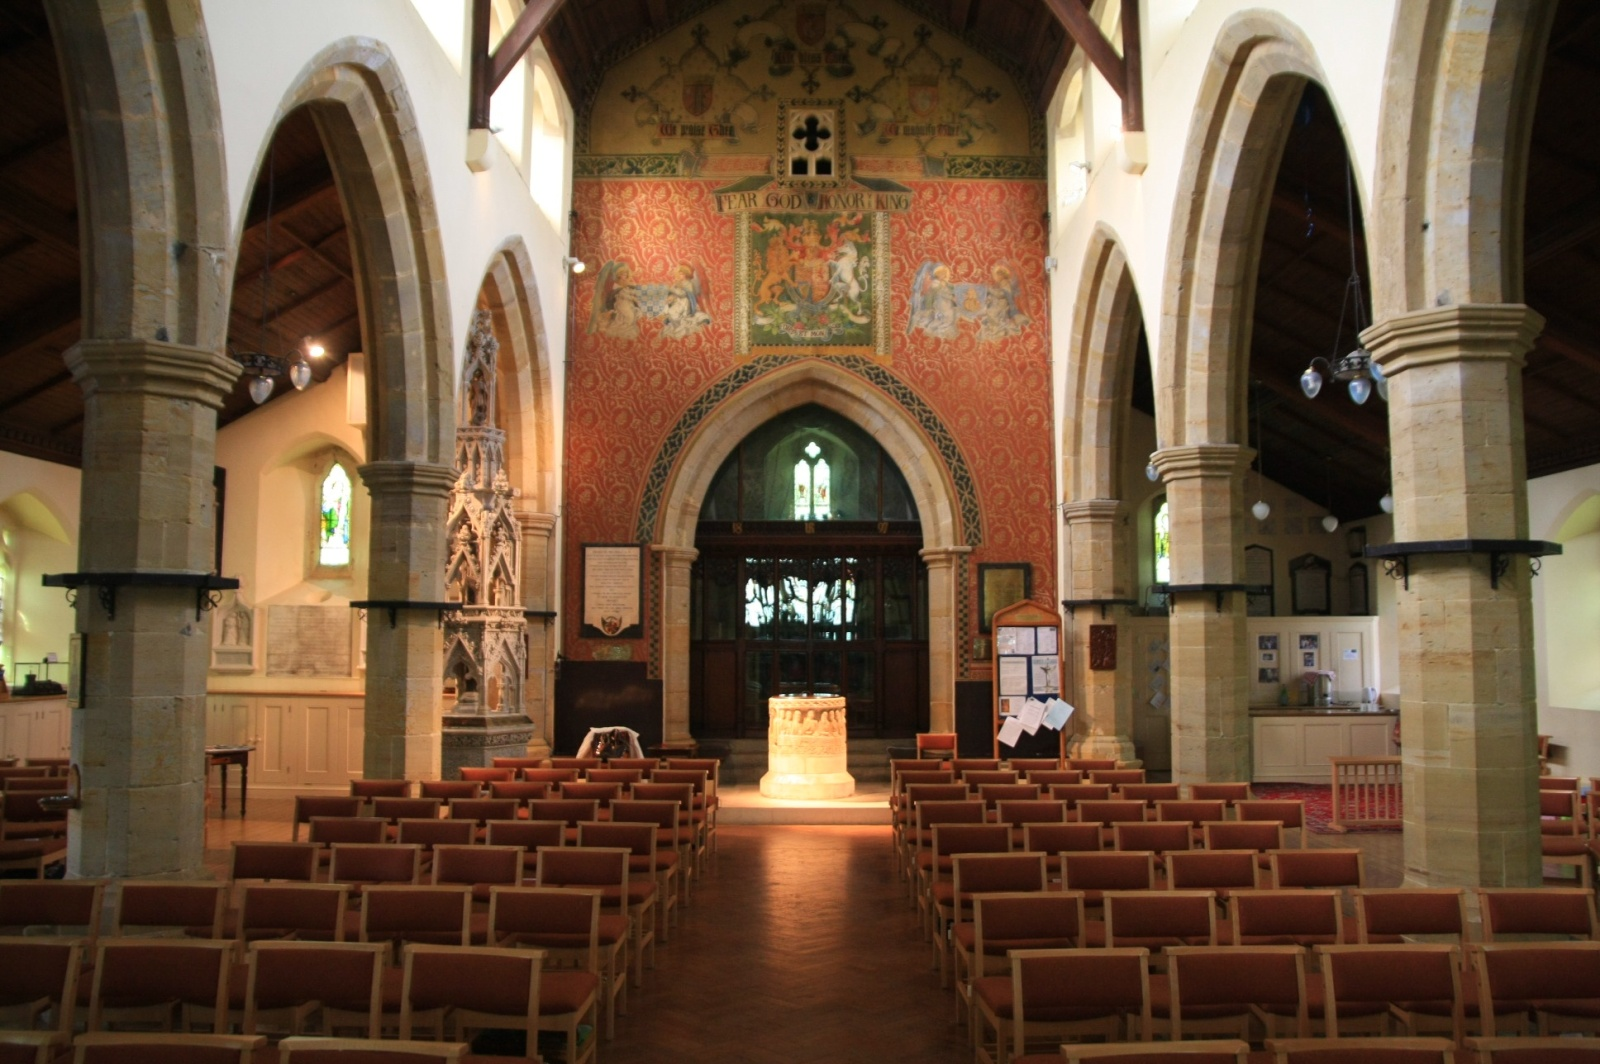 Interior of St. Nicholas'